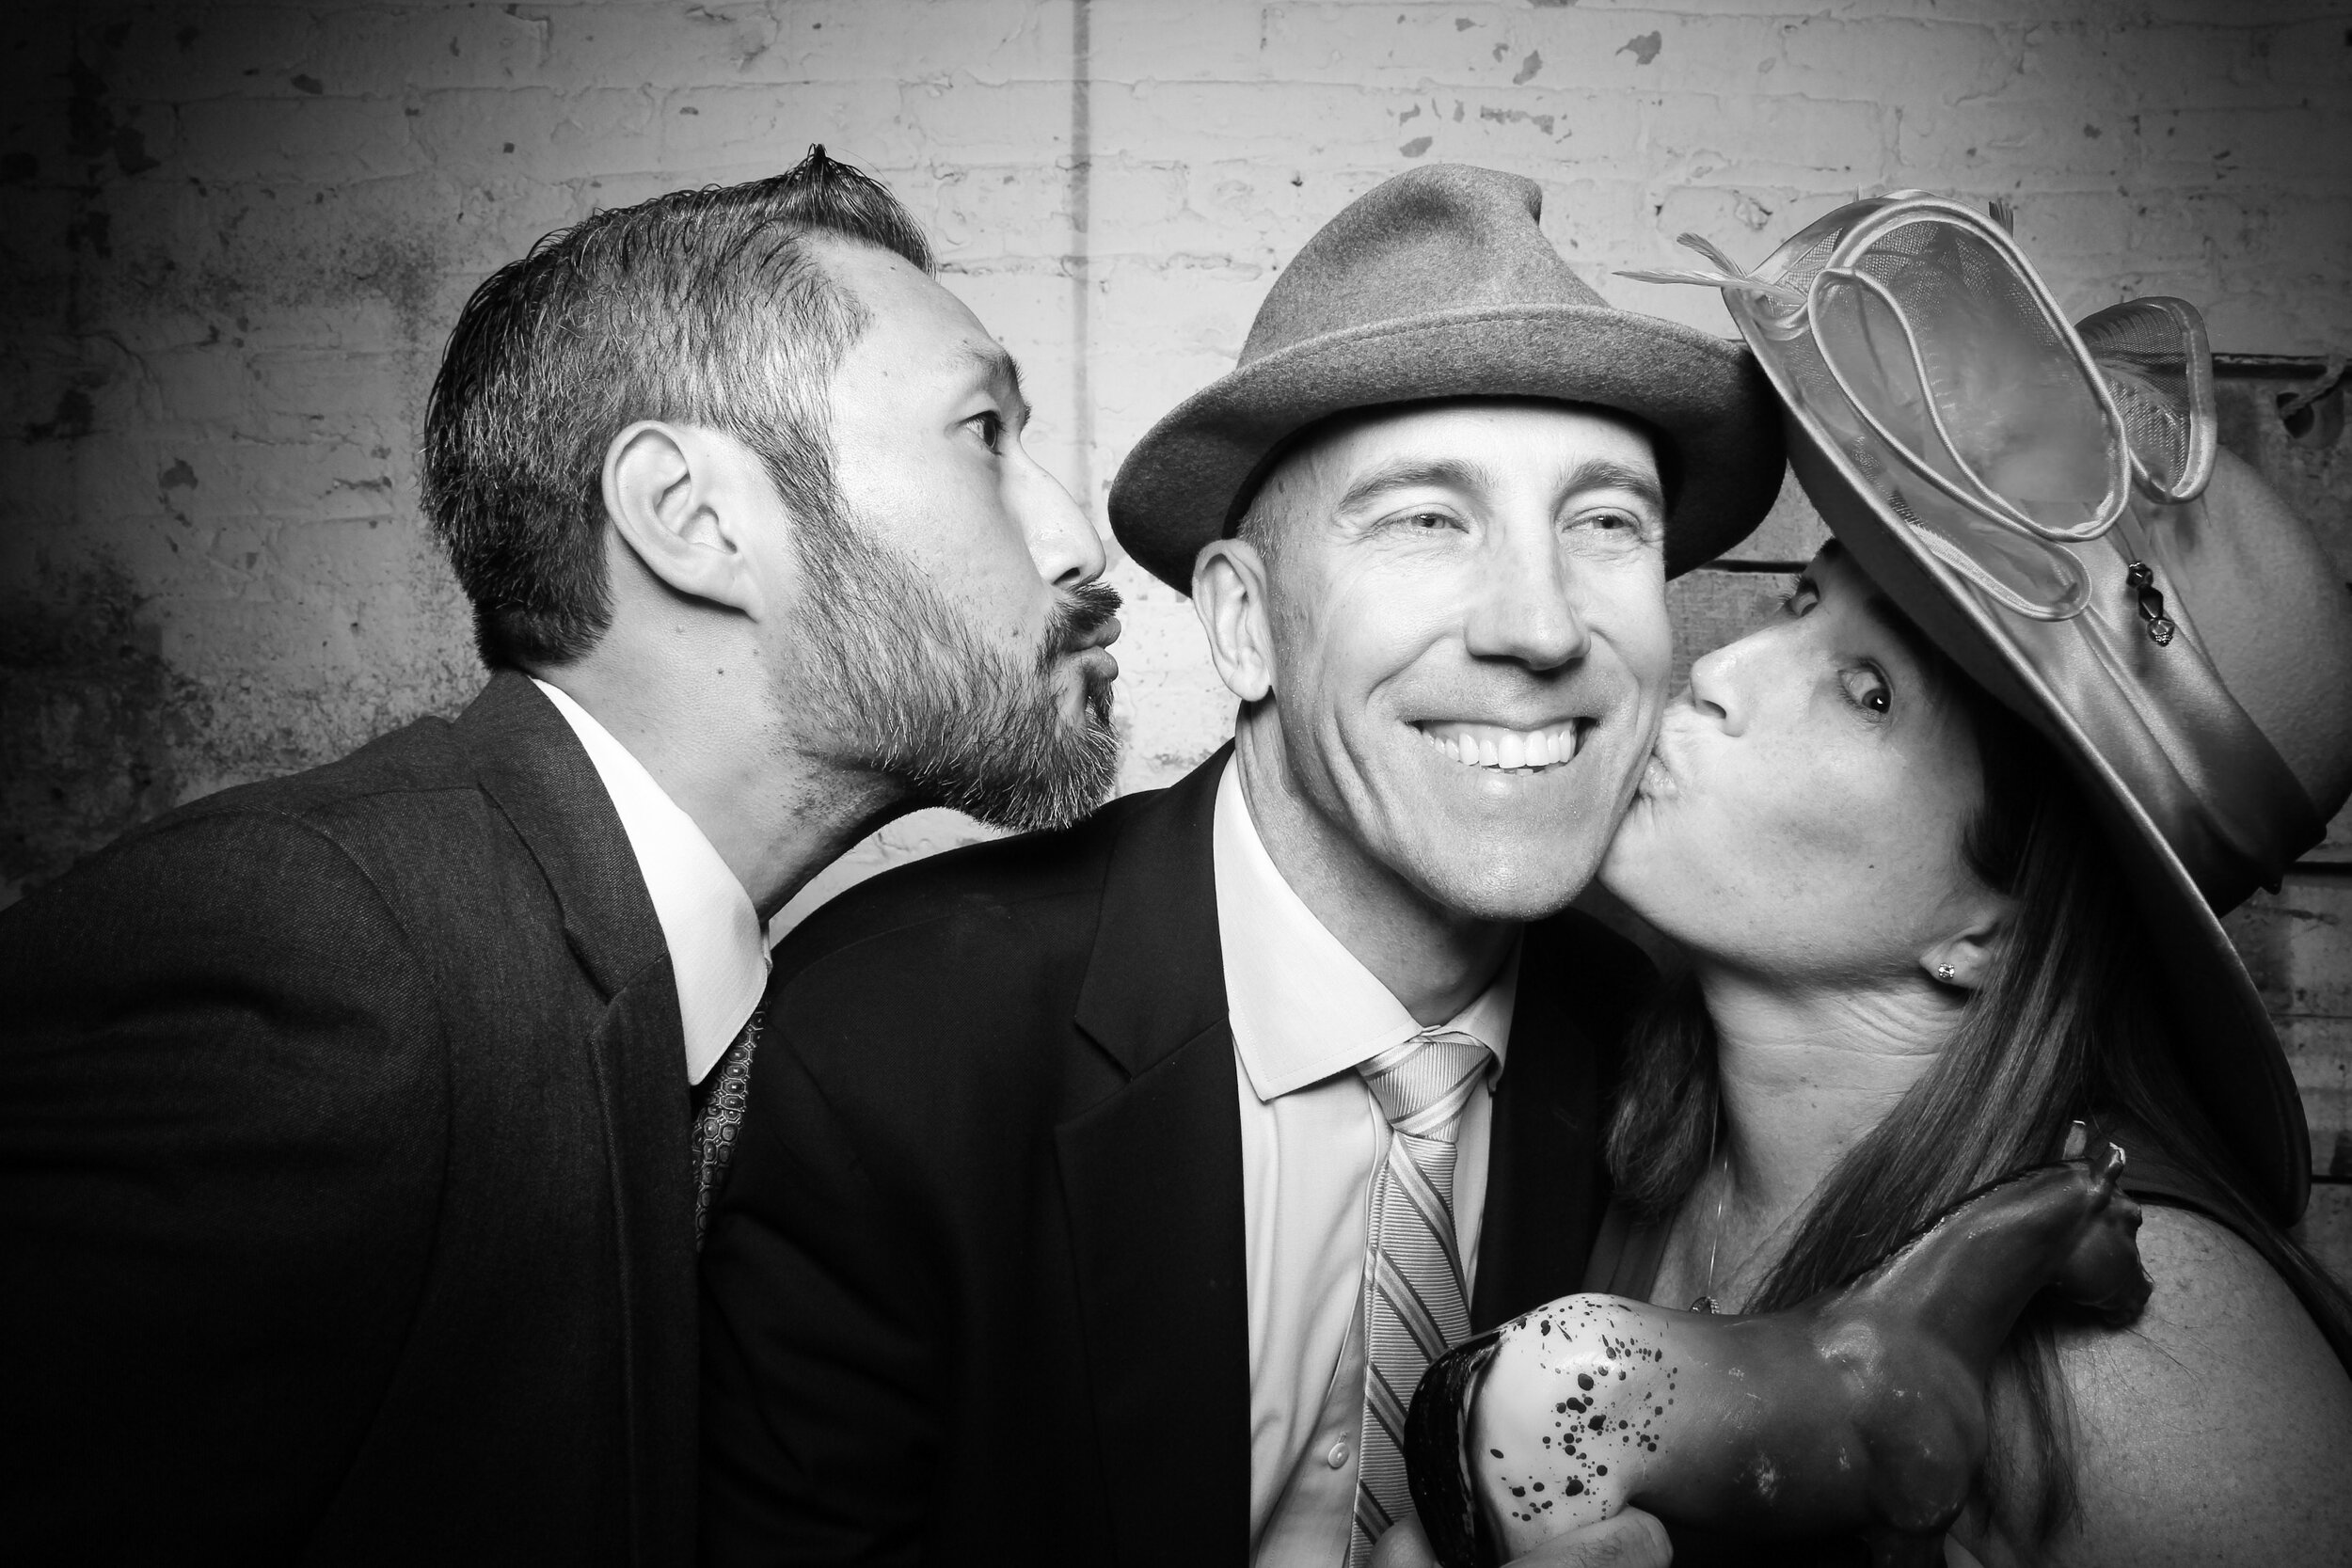 Chicago_Vintage_Wedding_Photobooth_Joinery_16.jpg